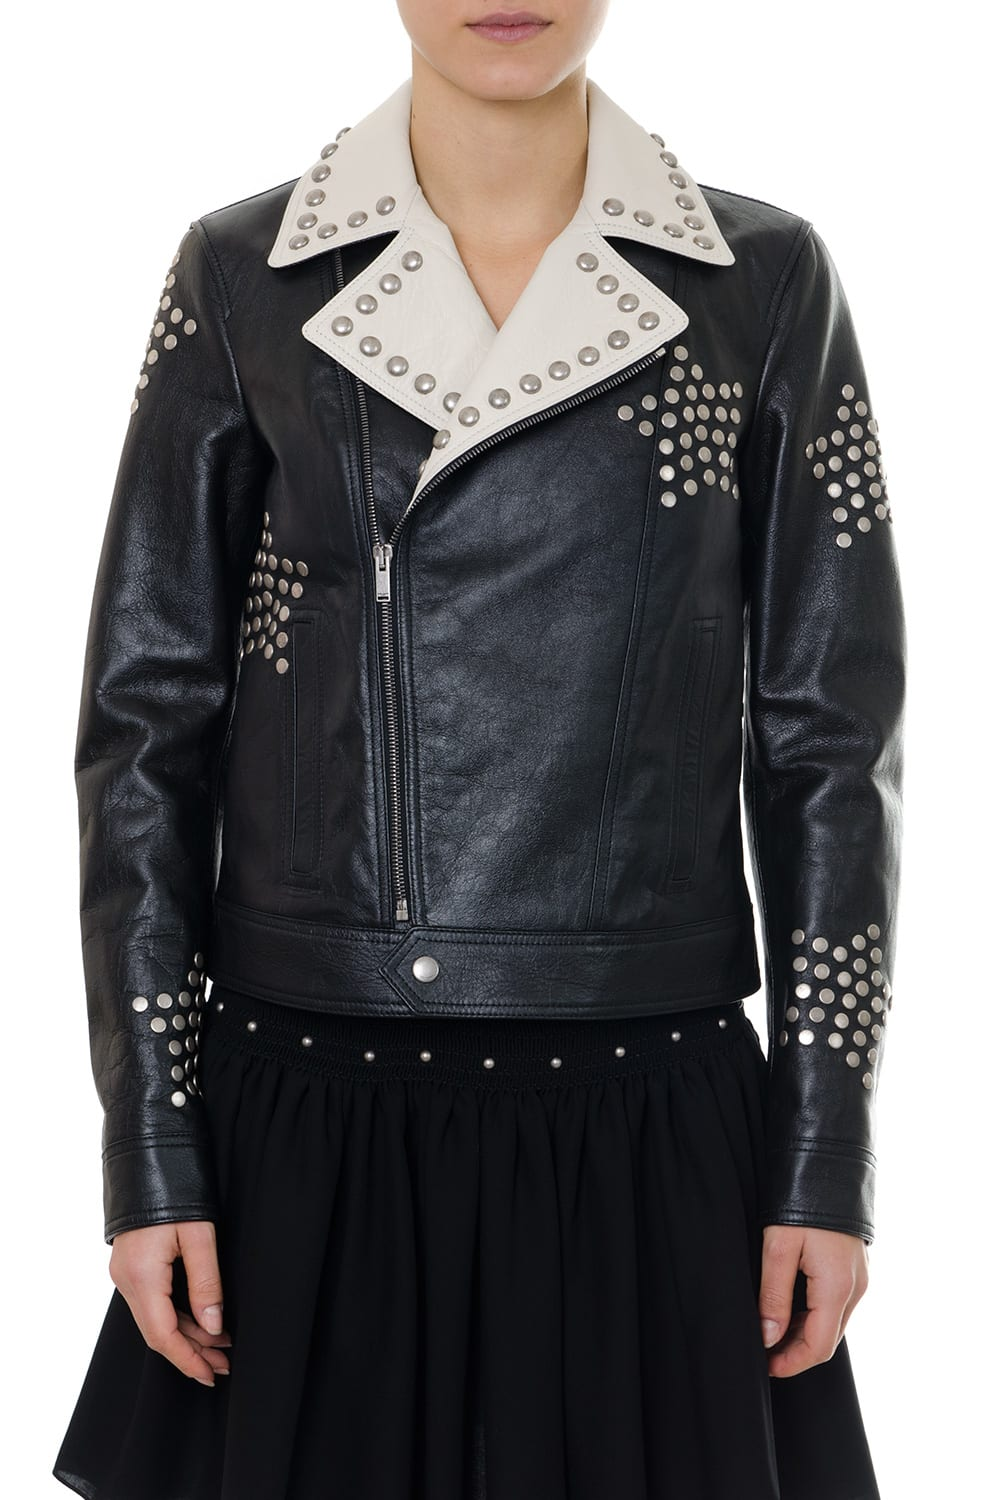 Saint Laurent Black Leather Biker Jacket Embroidered With Studs